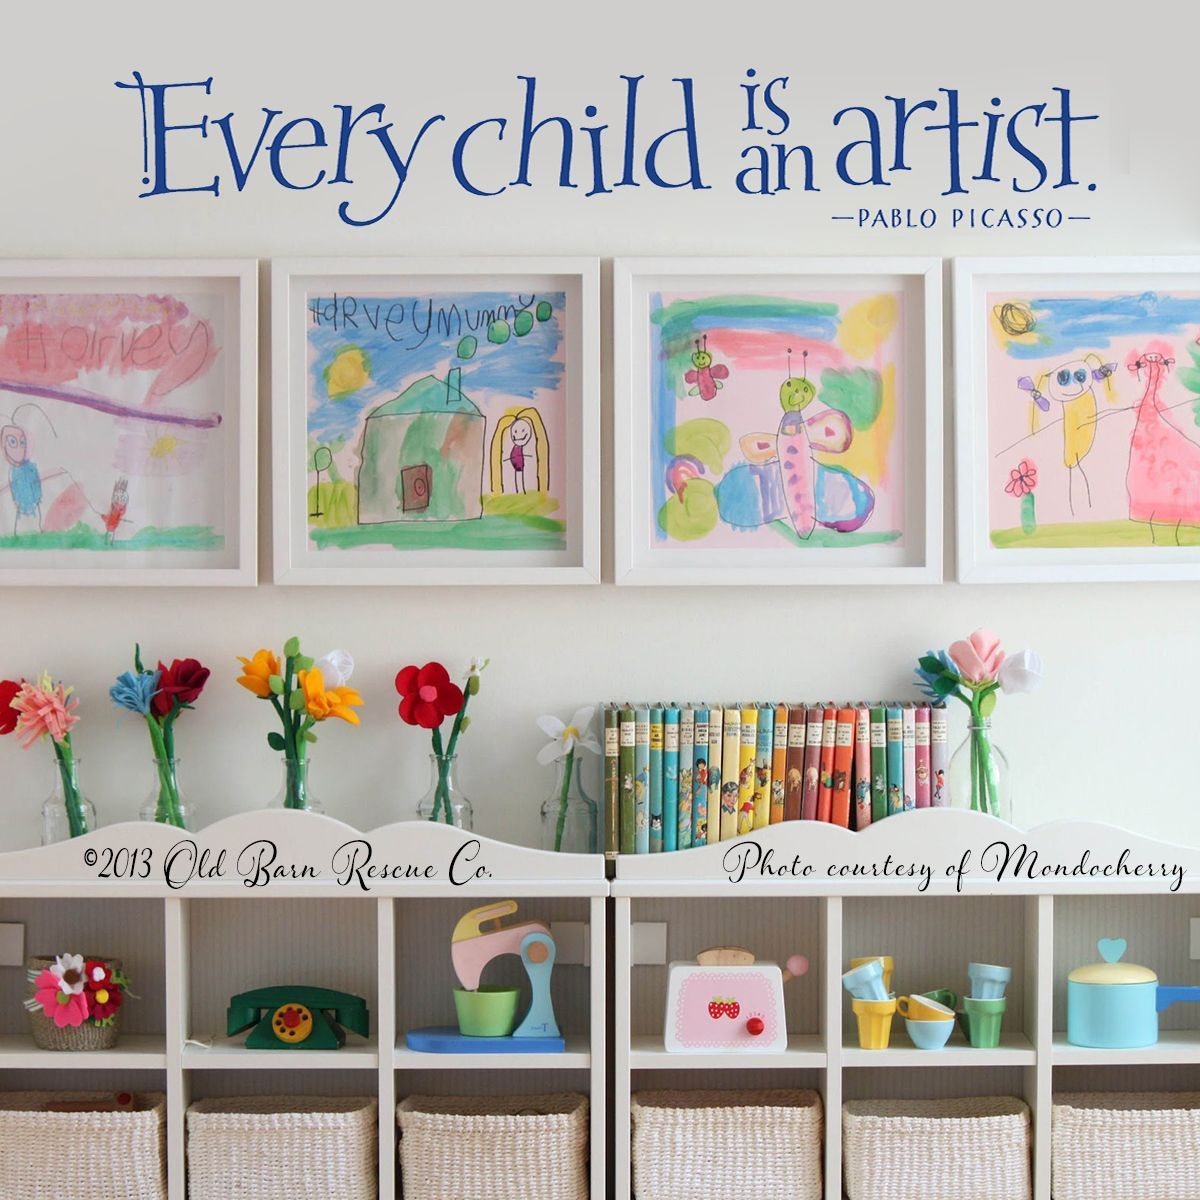 Every Child Is An Artist Pablo Picasso Quotes Words Vinyl Wall Sticker Decal Kid